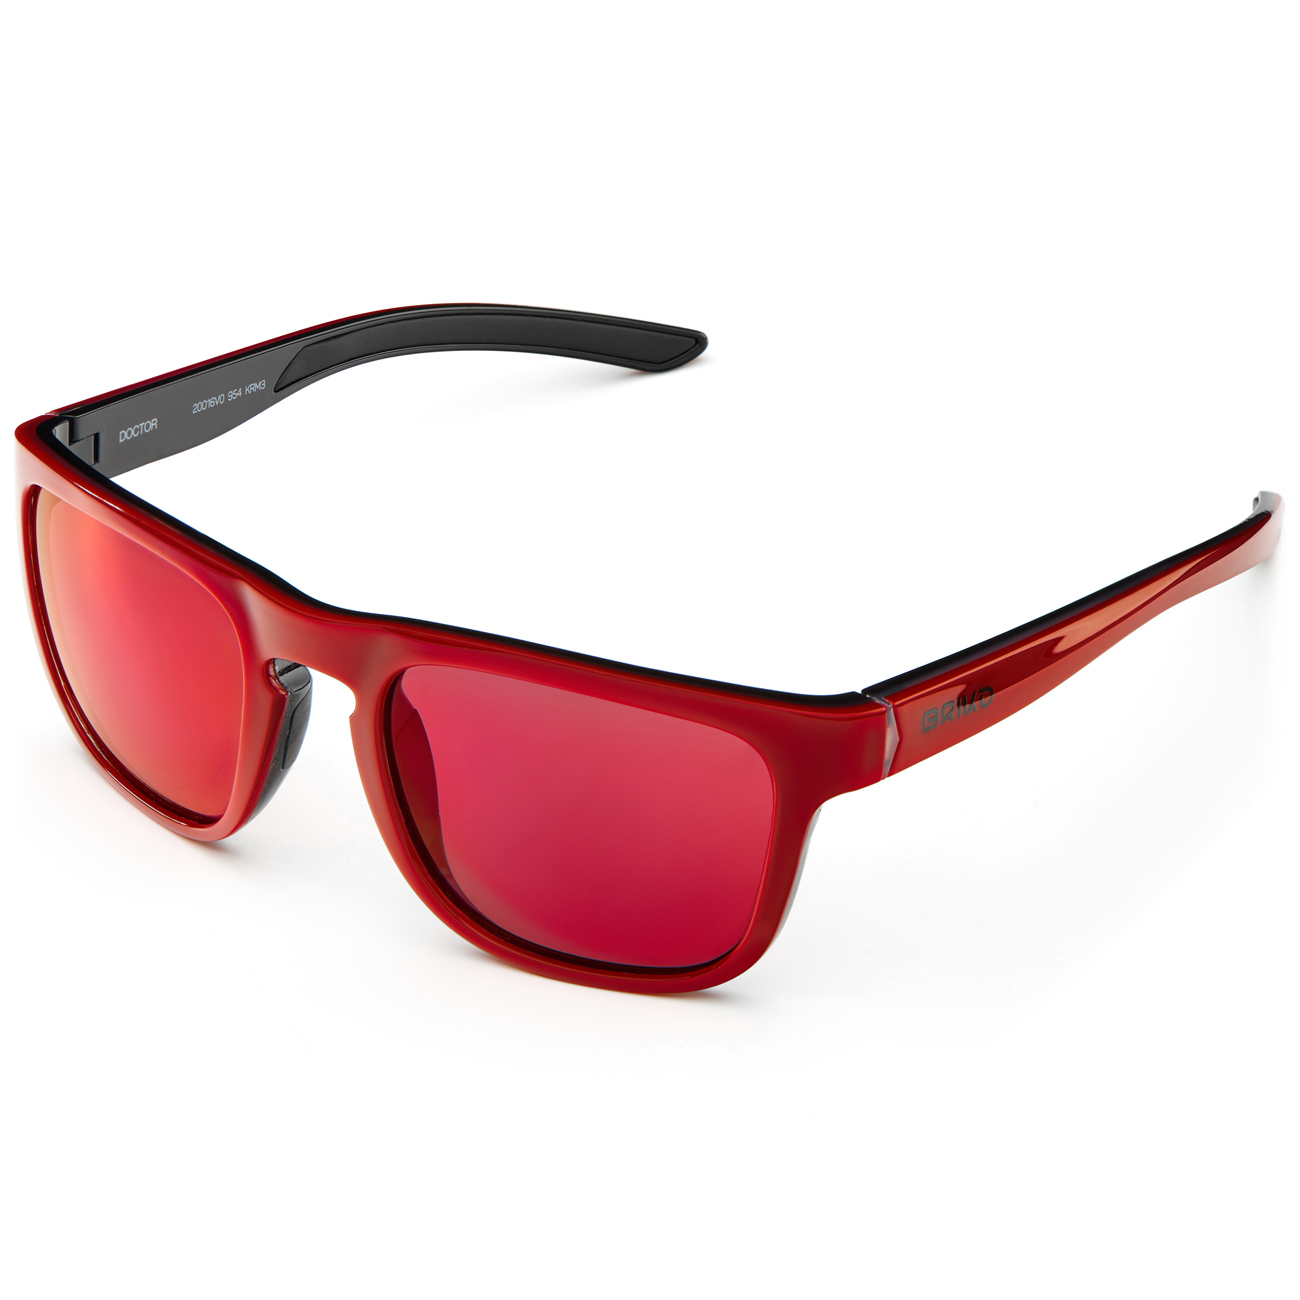 | Briko Casual zonnebril unisex Rood - Doctor Mirror Color HD Sunglasses Sh Mt Cry Red -Krm3